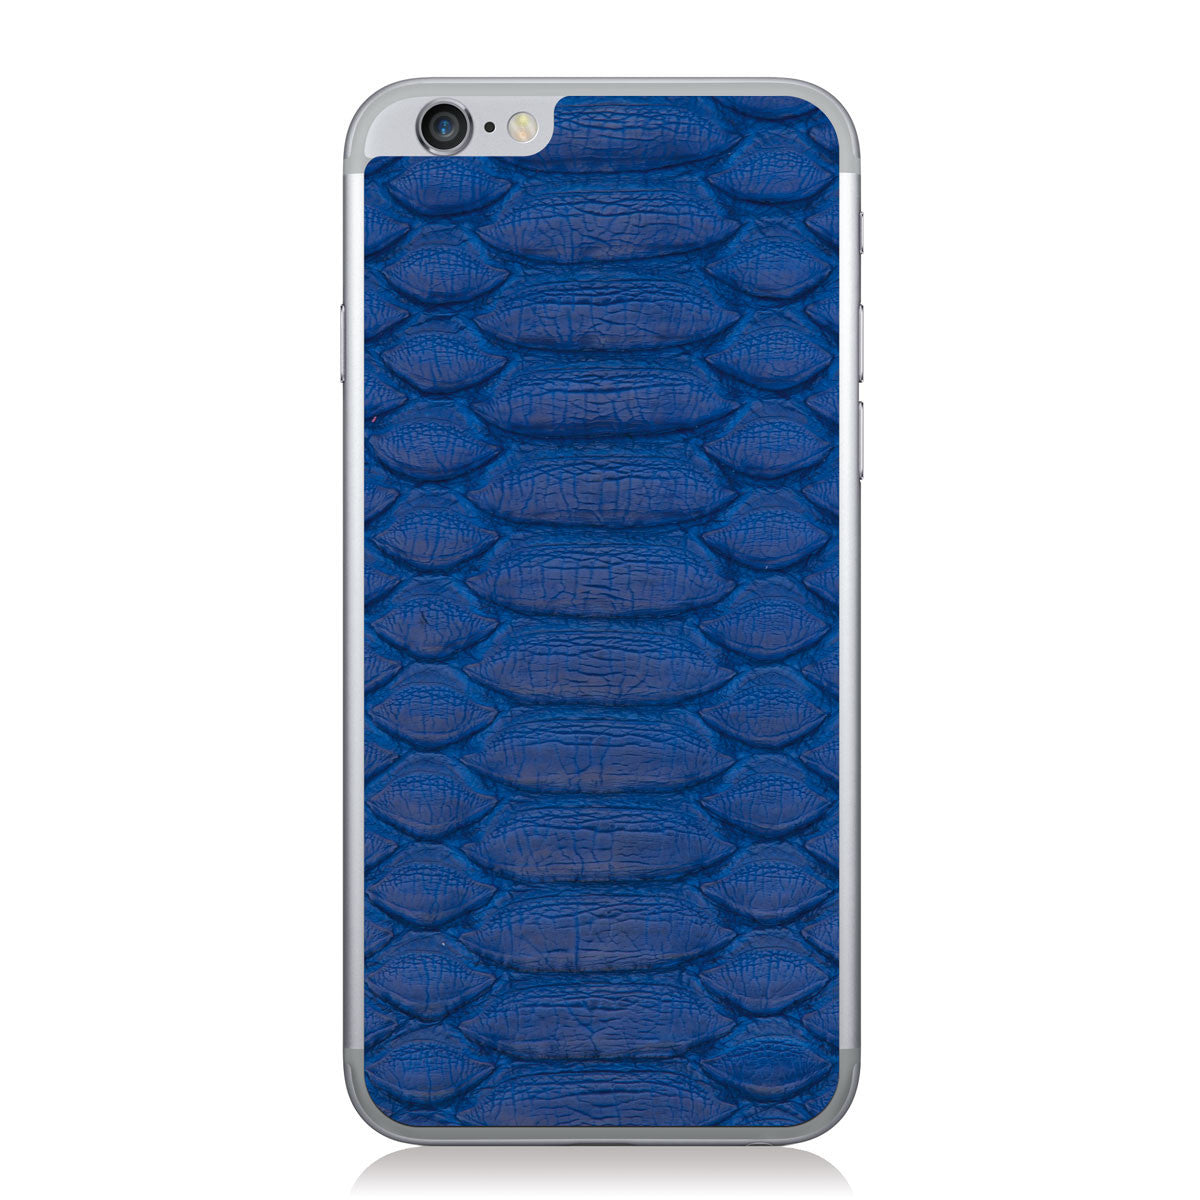 Cobalt Python iPhone 6/6s Leather Skin